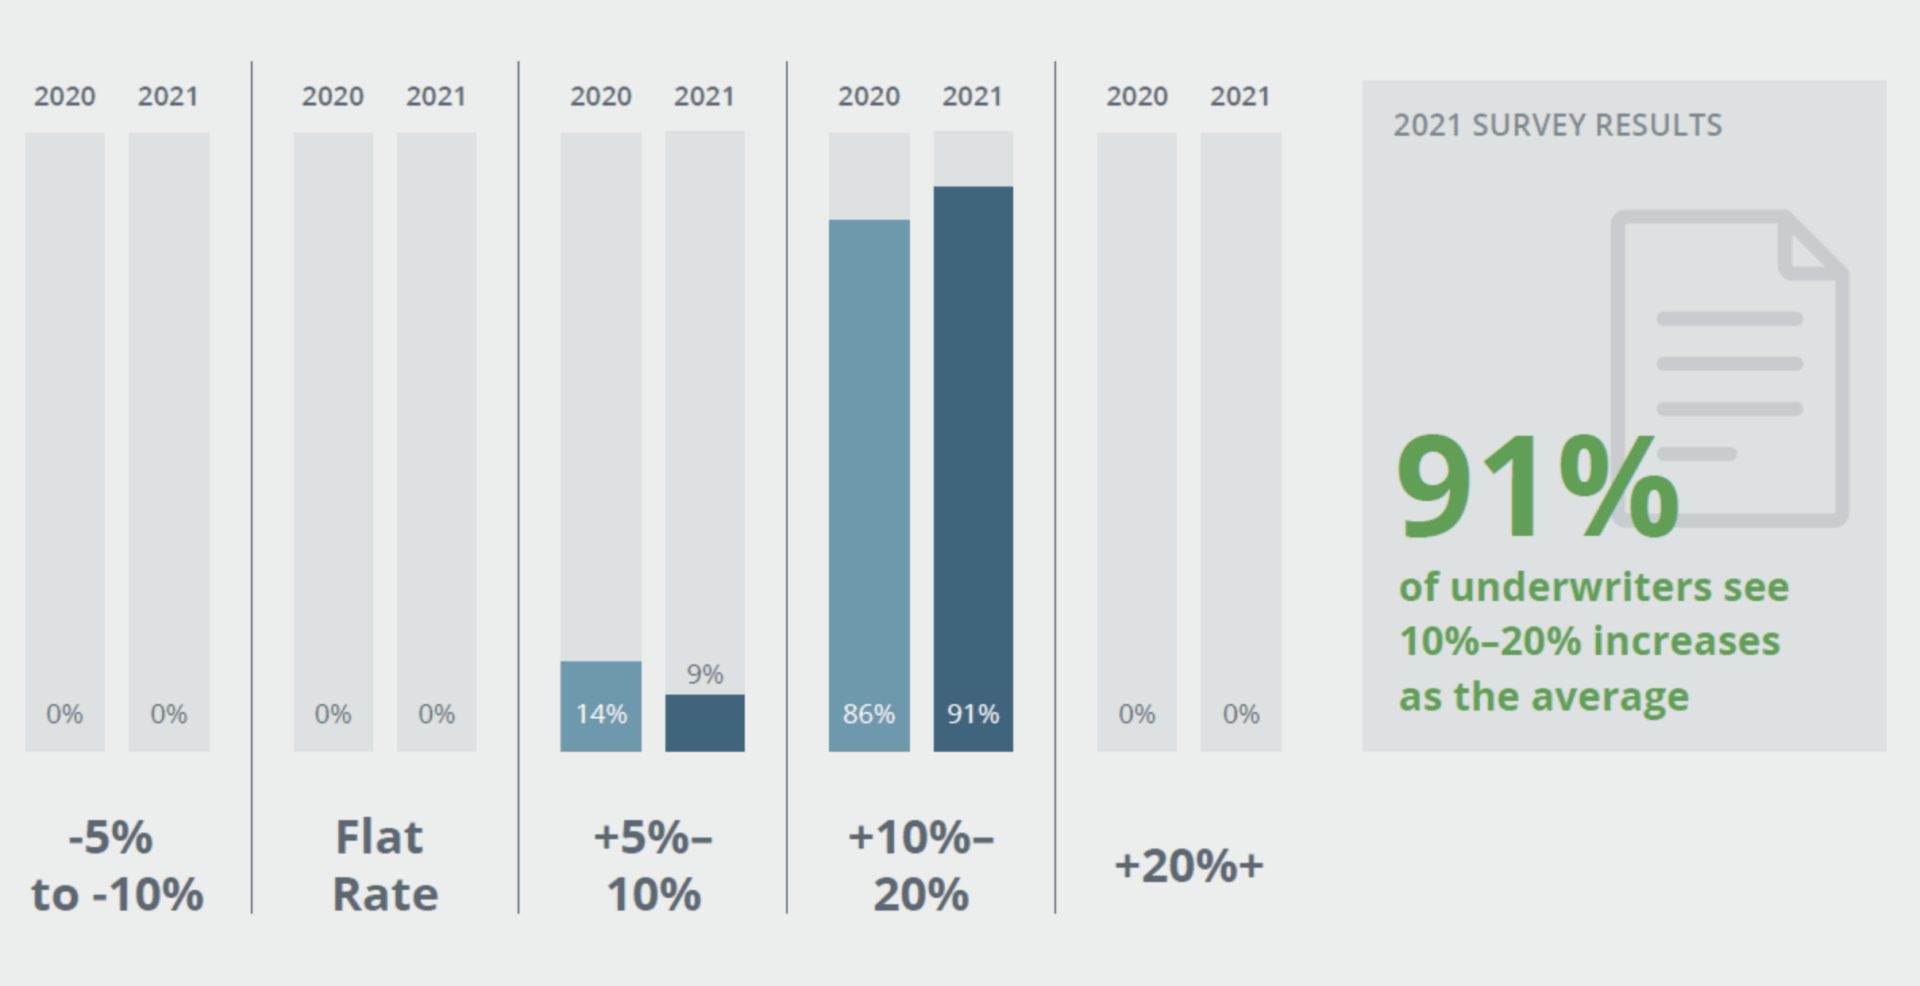 Survey results show 91% of underwriters see 10%-20% increases as the average